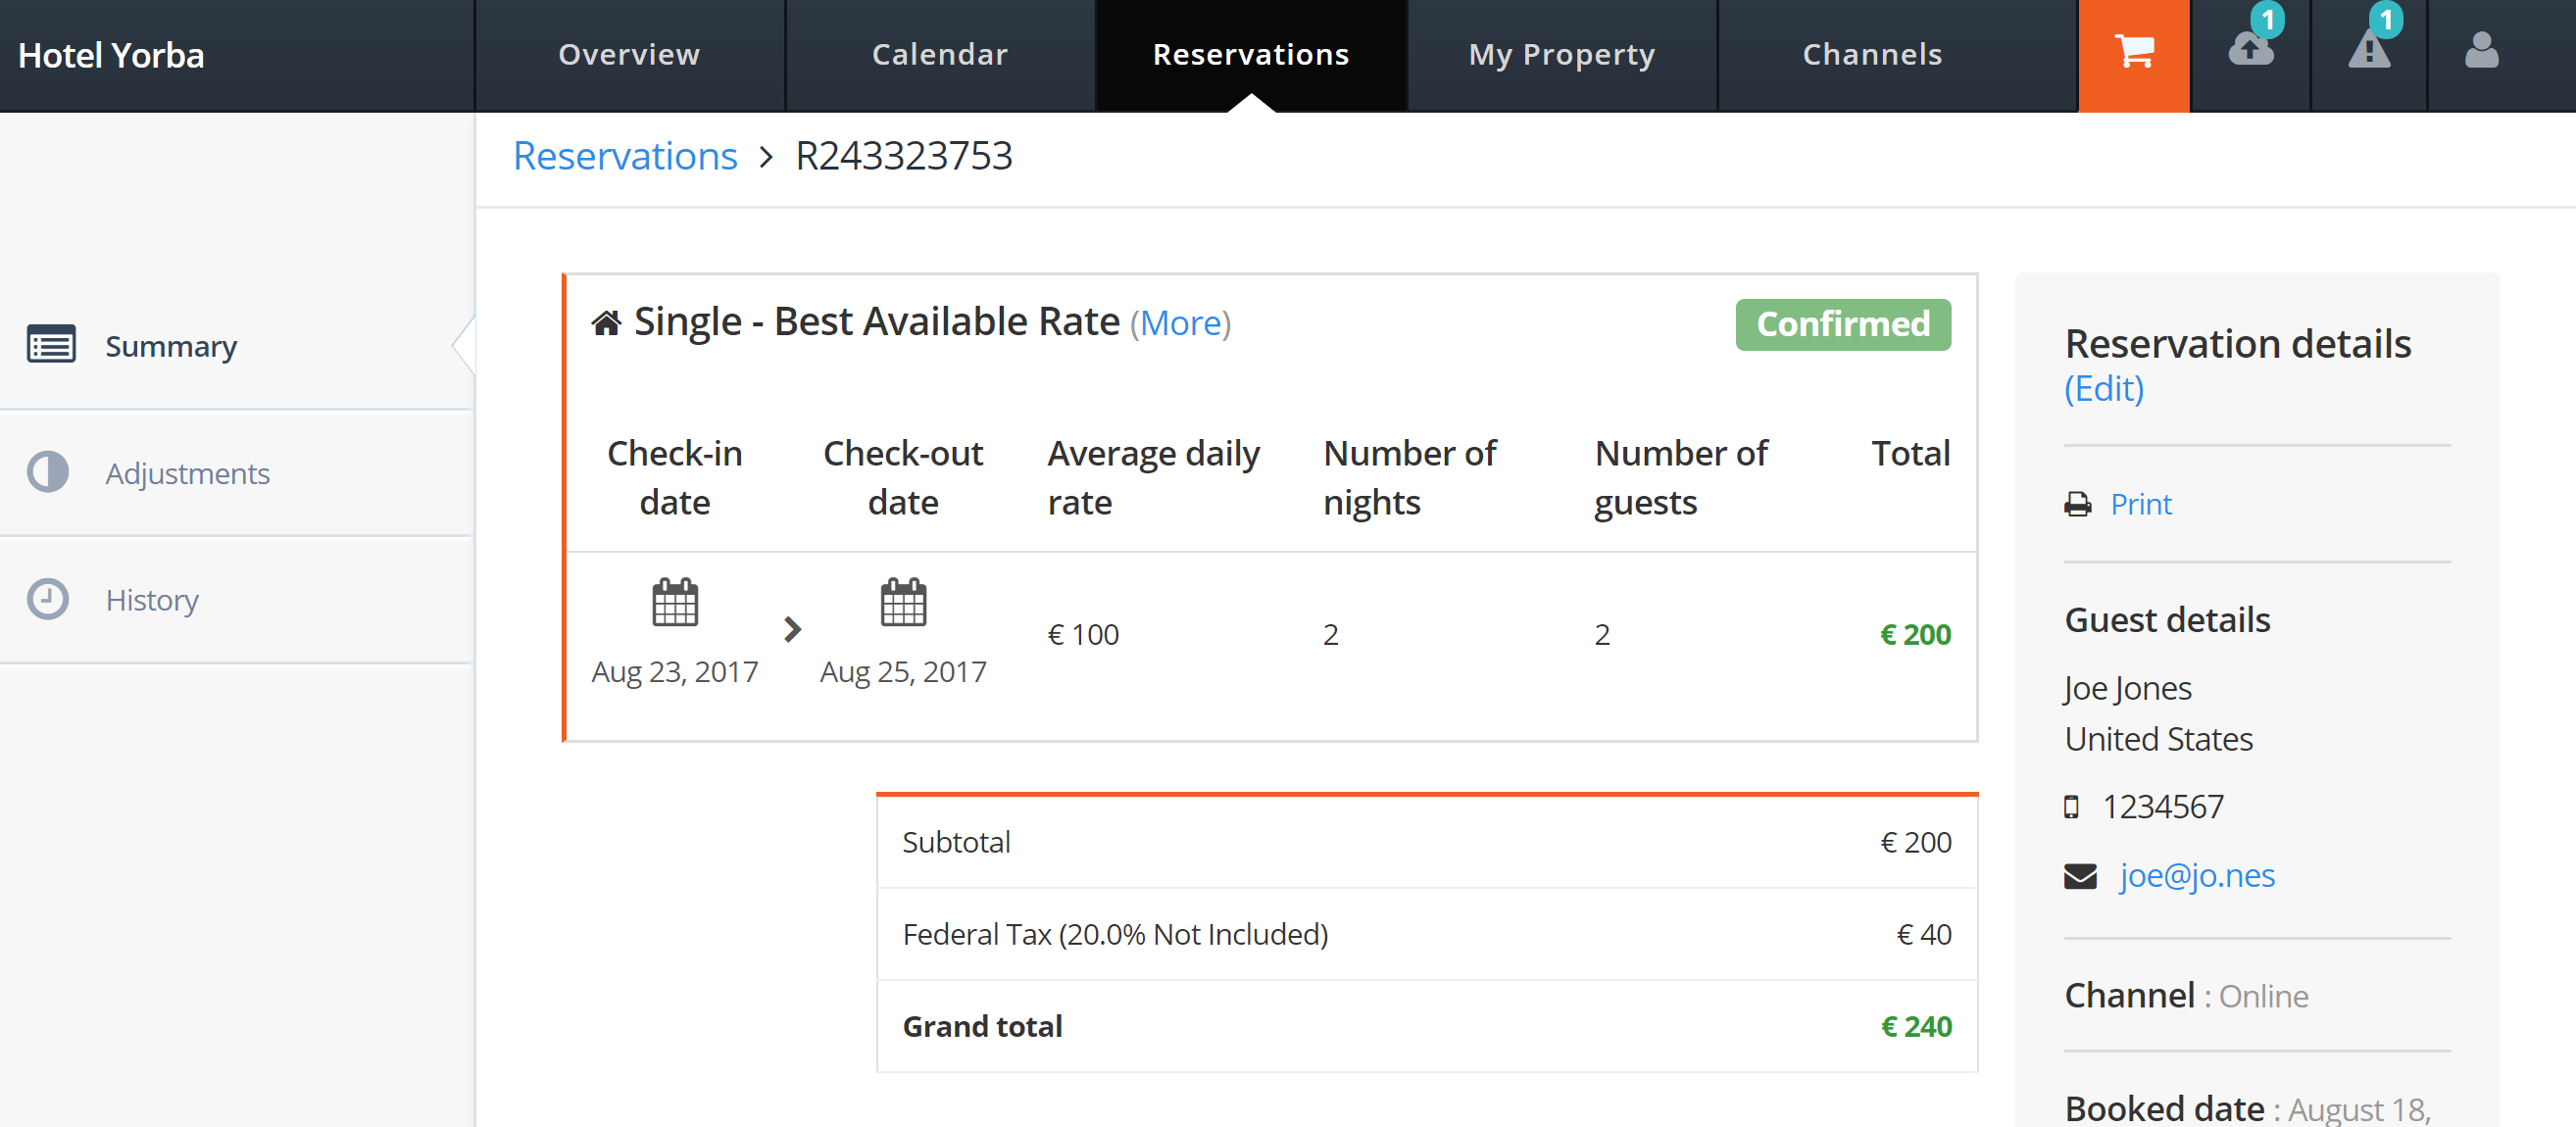 MyHotelCRS.com Click 'view' to view the details for the new reservation booking updated to 'Confirmed' in MyHotelCRS's portal